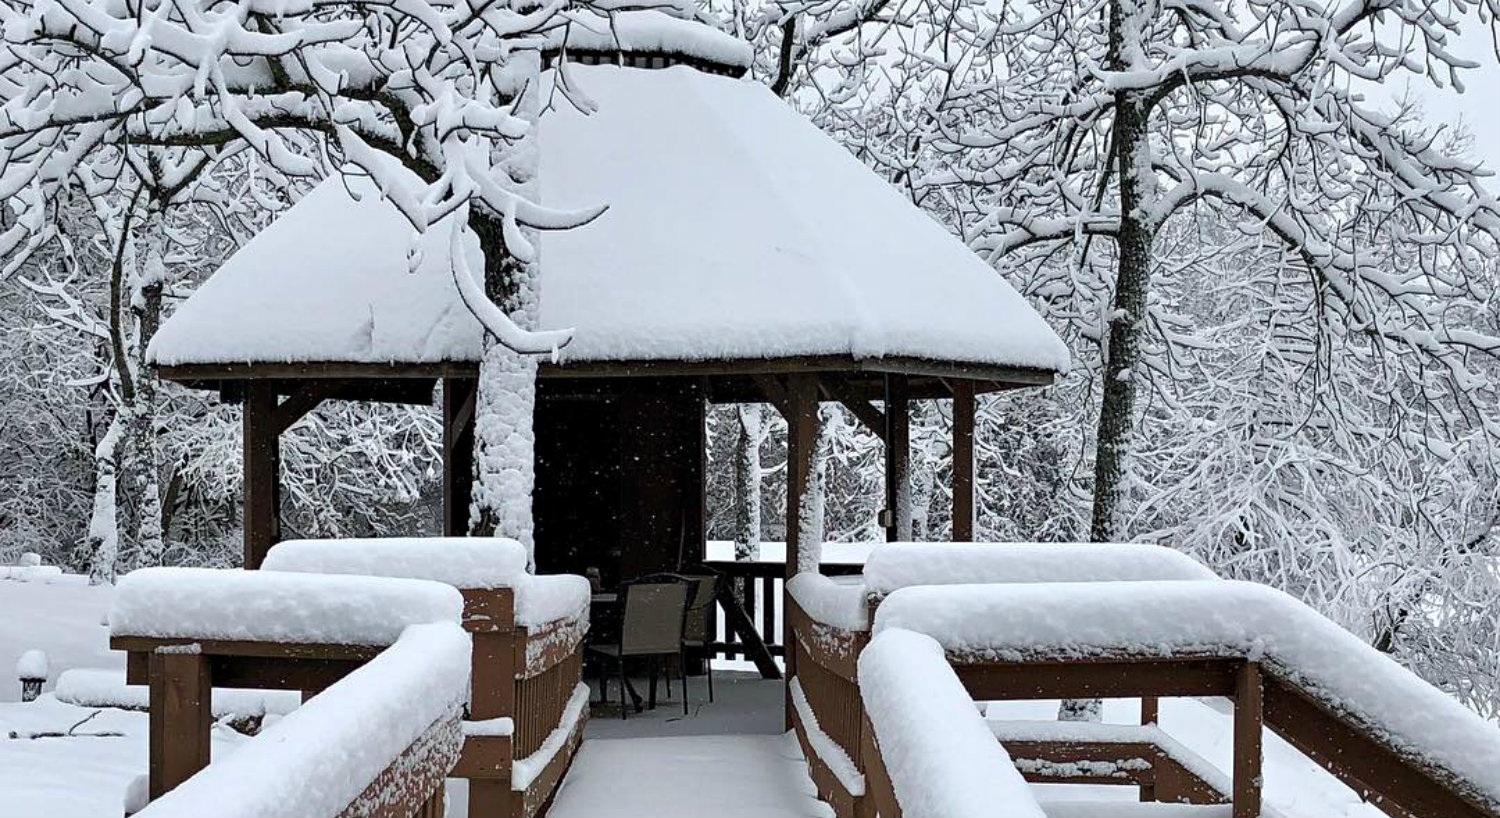 Gazebo, pier and trees covered in fresh white snow